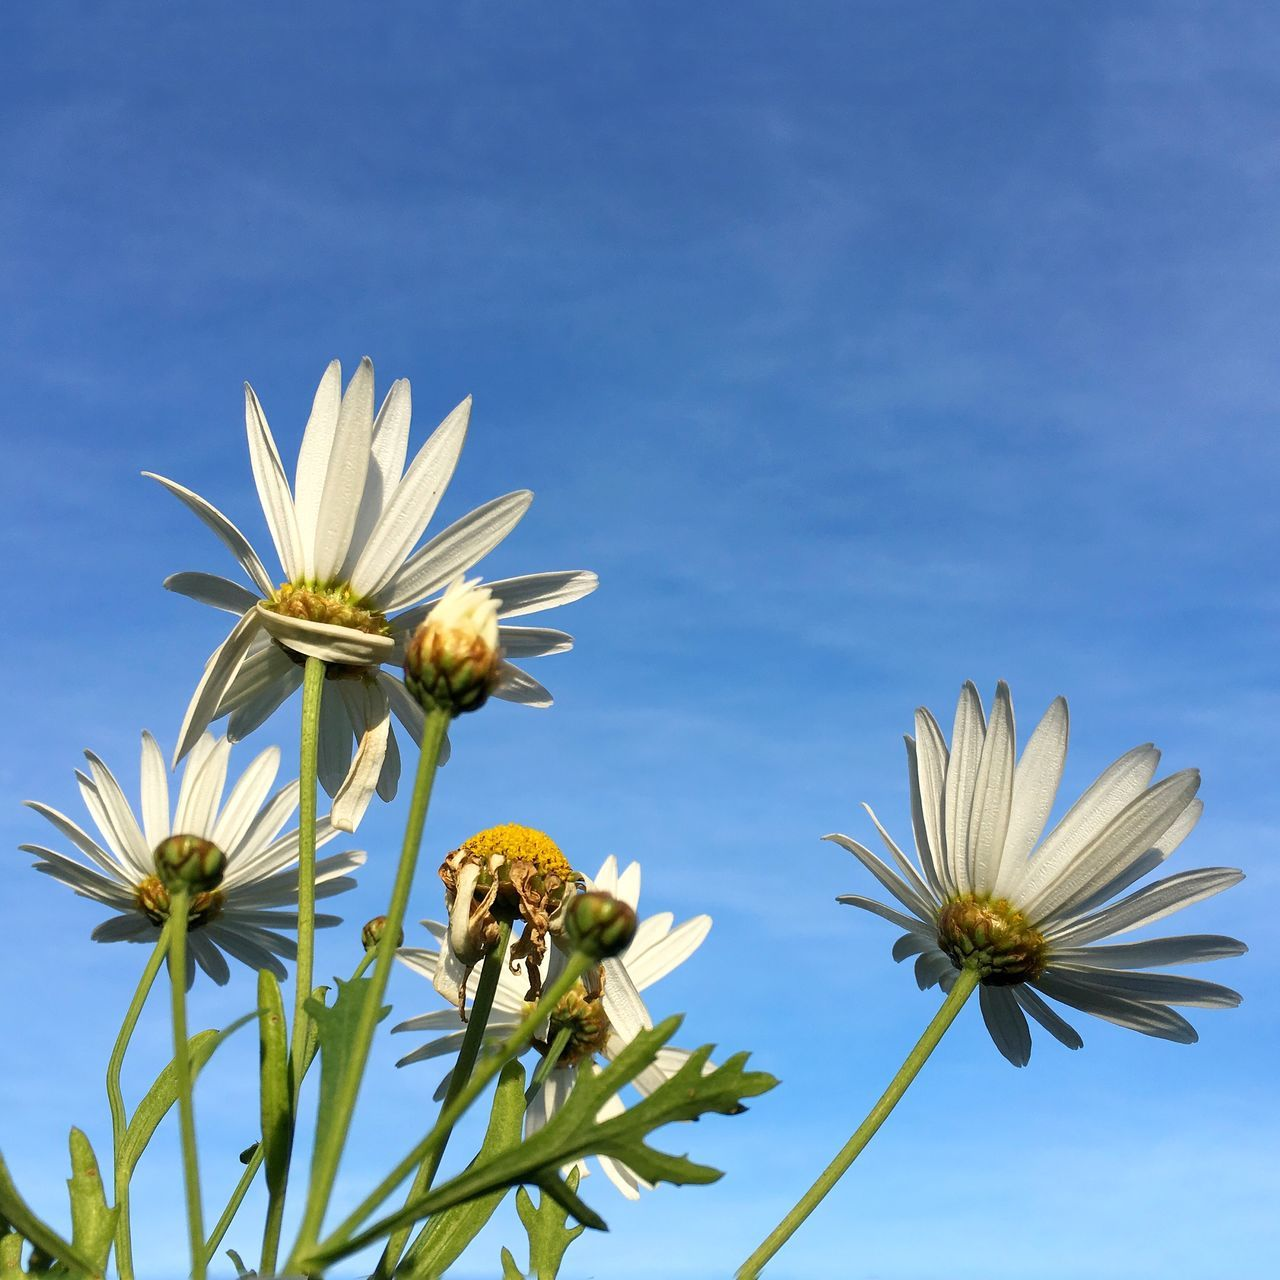 Low Angle View Of White Flowers Blooming Outdoors